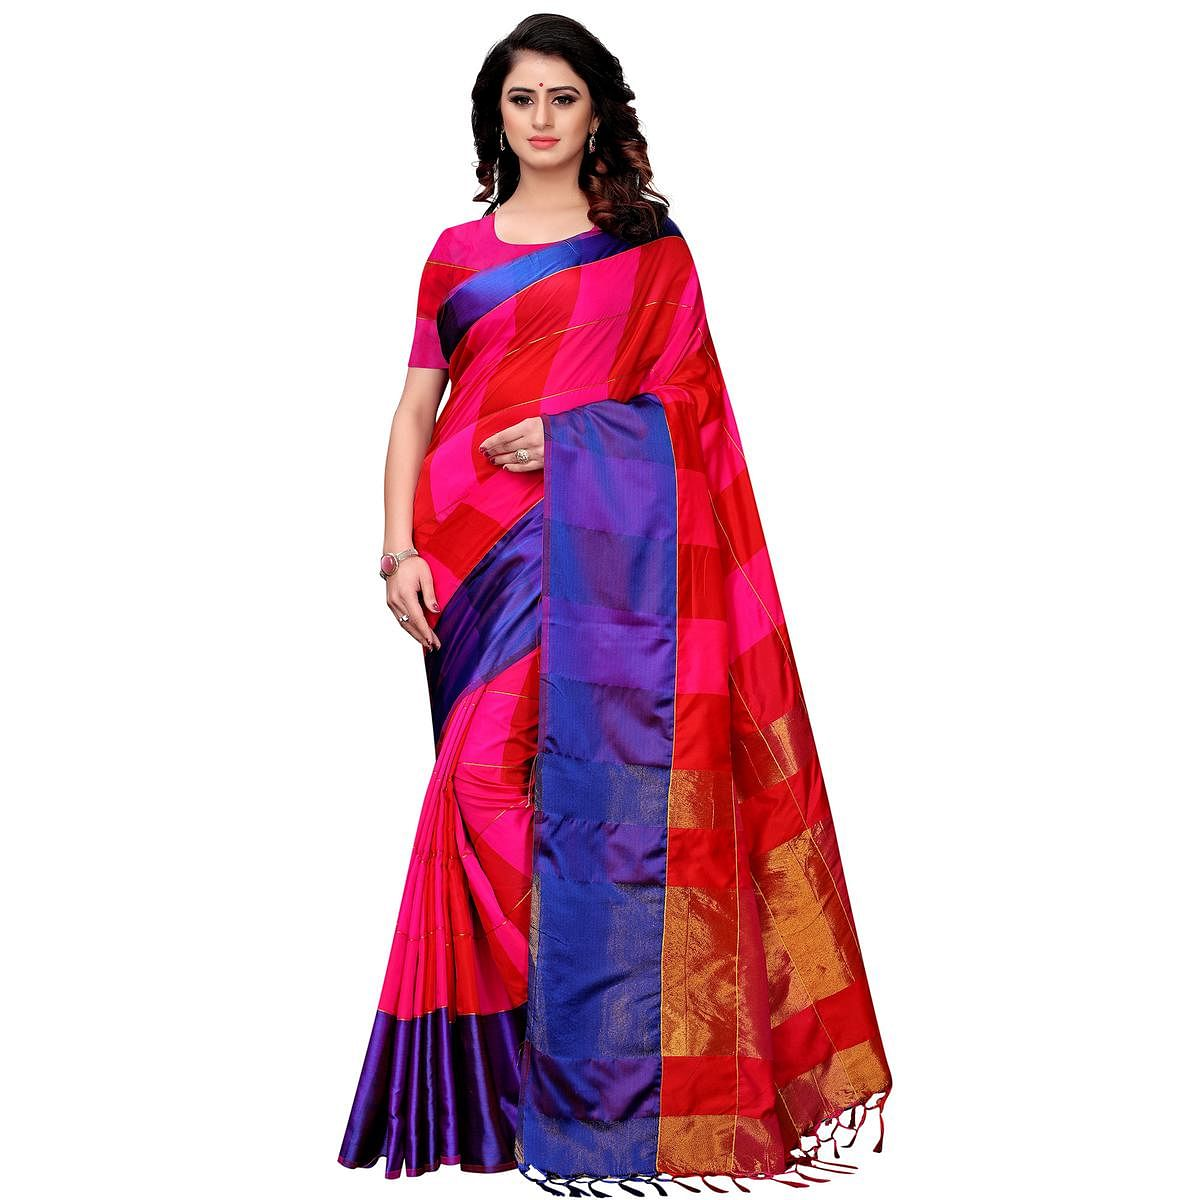 Prominent Rani Pink-Blue Colored Festive Wear Tussar Silk Saree With Tassels